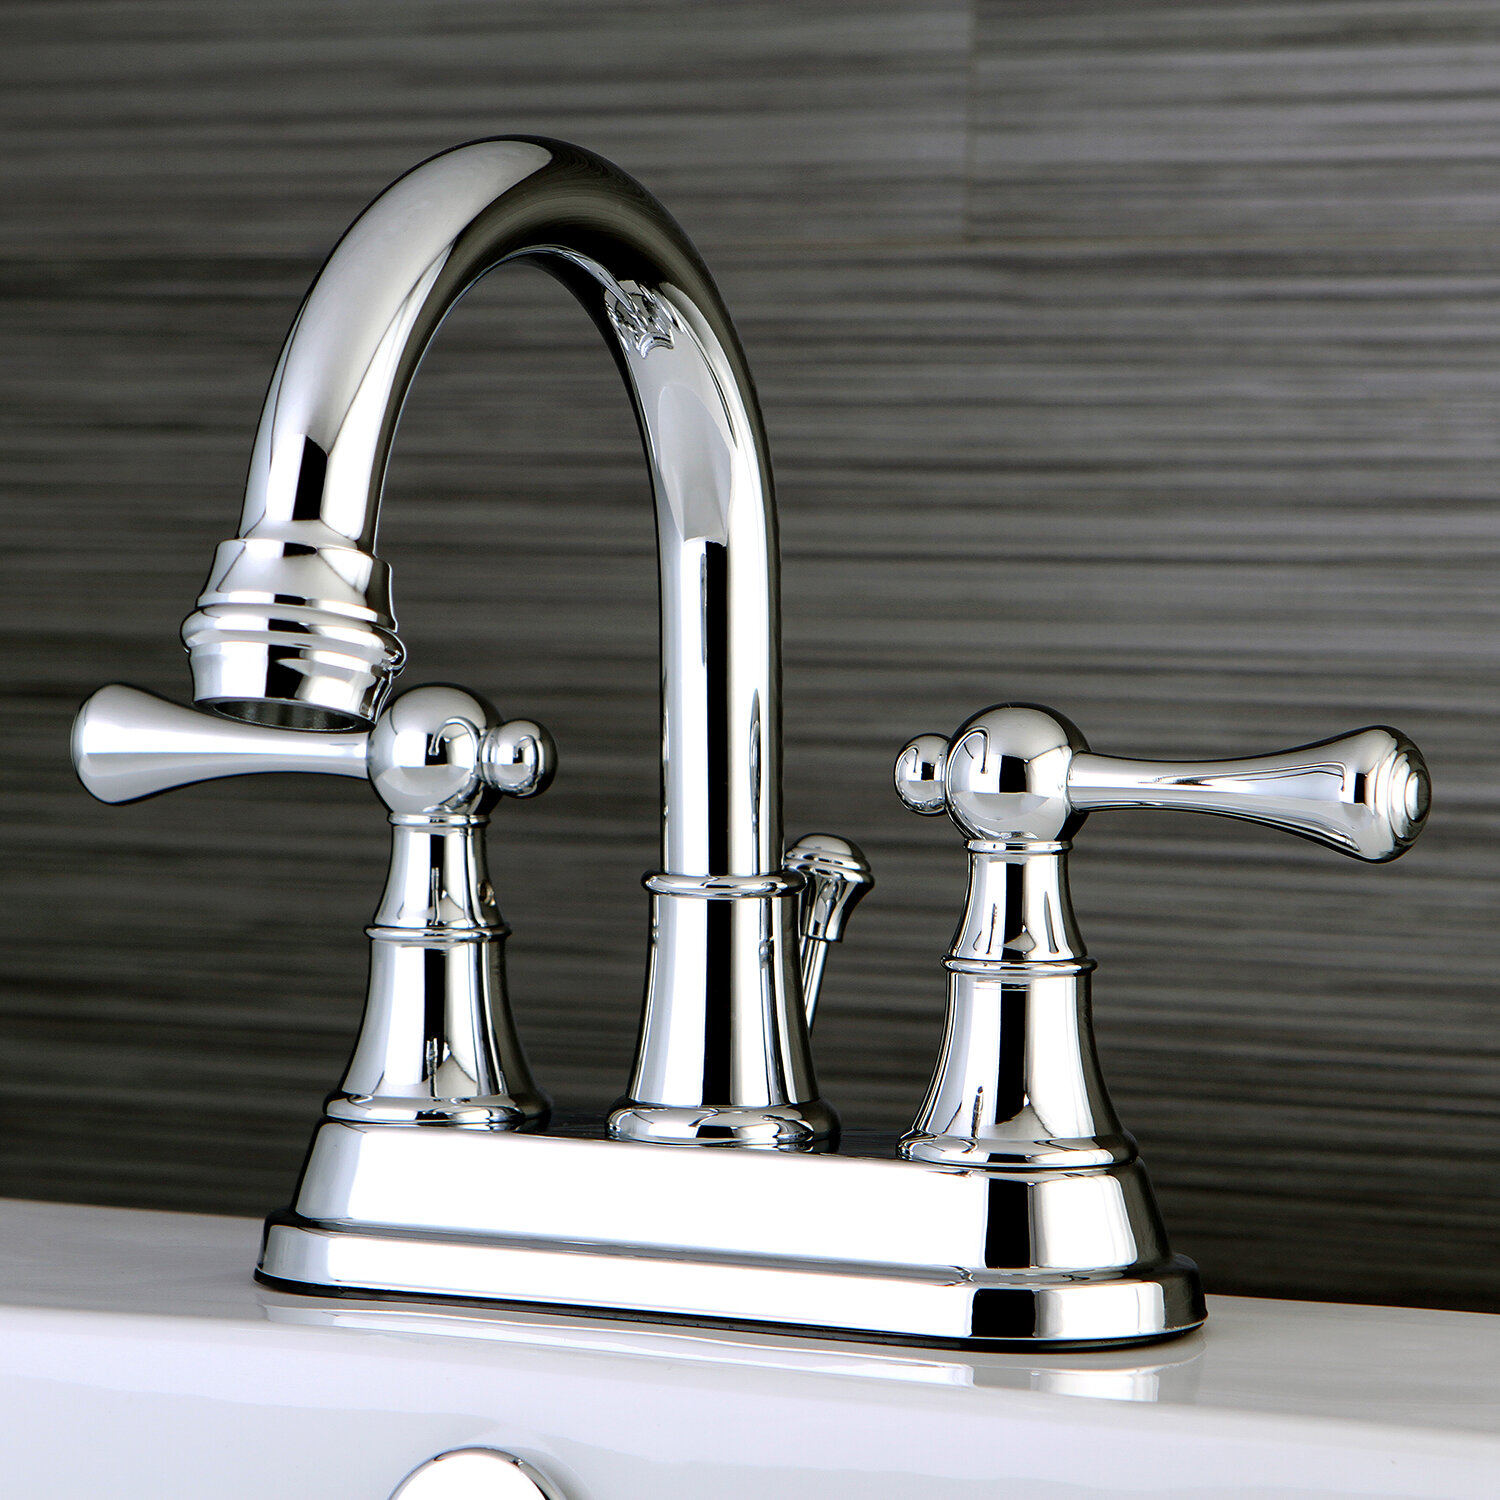 Kingston Brass Centerset Bathroom Faucet with Drain Assembly | Wayfair